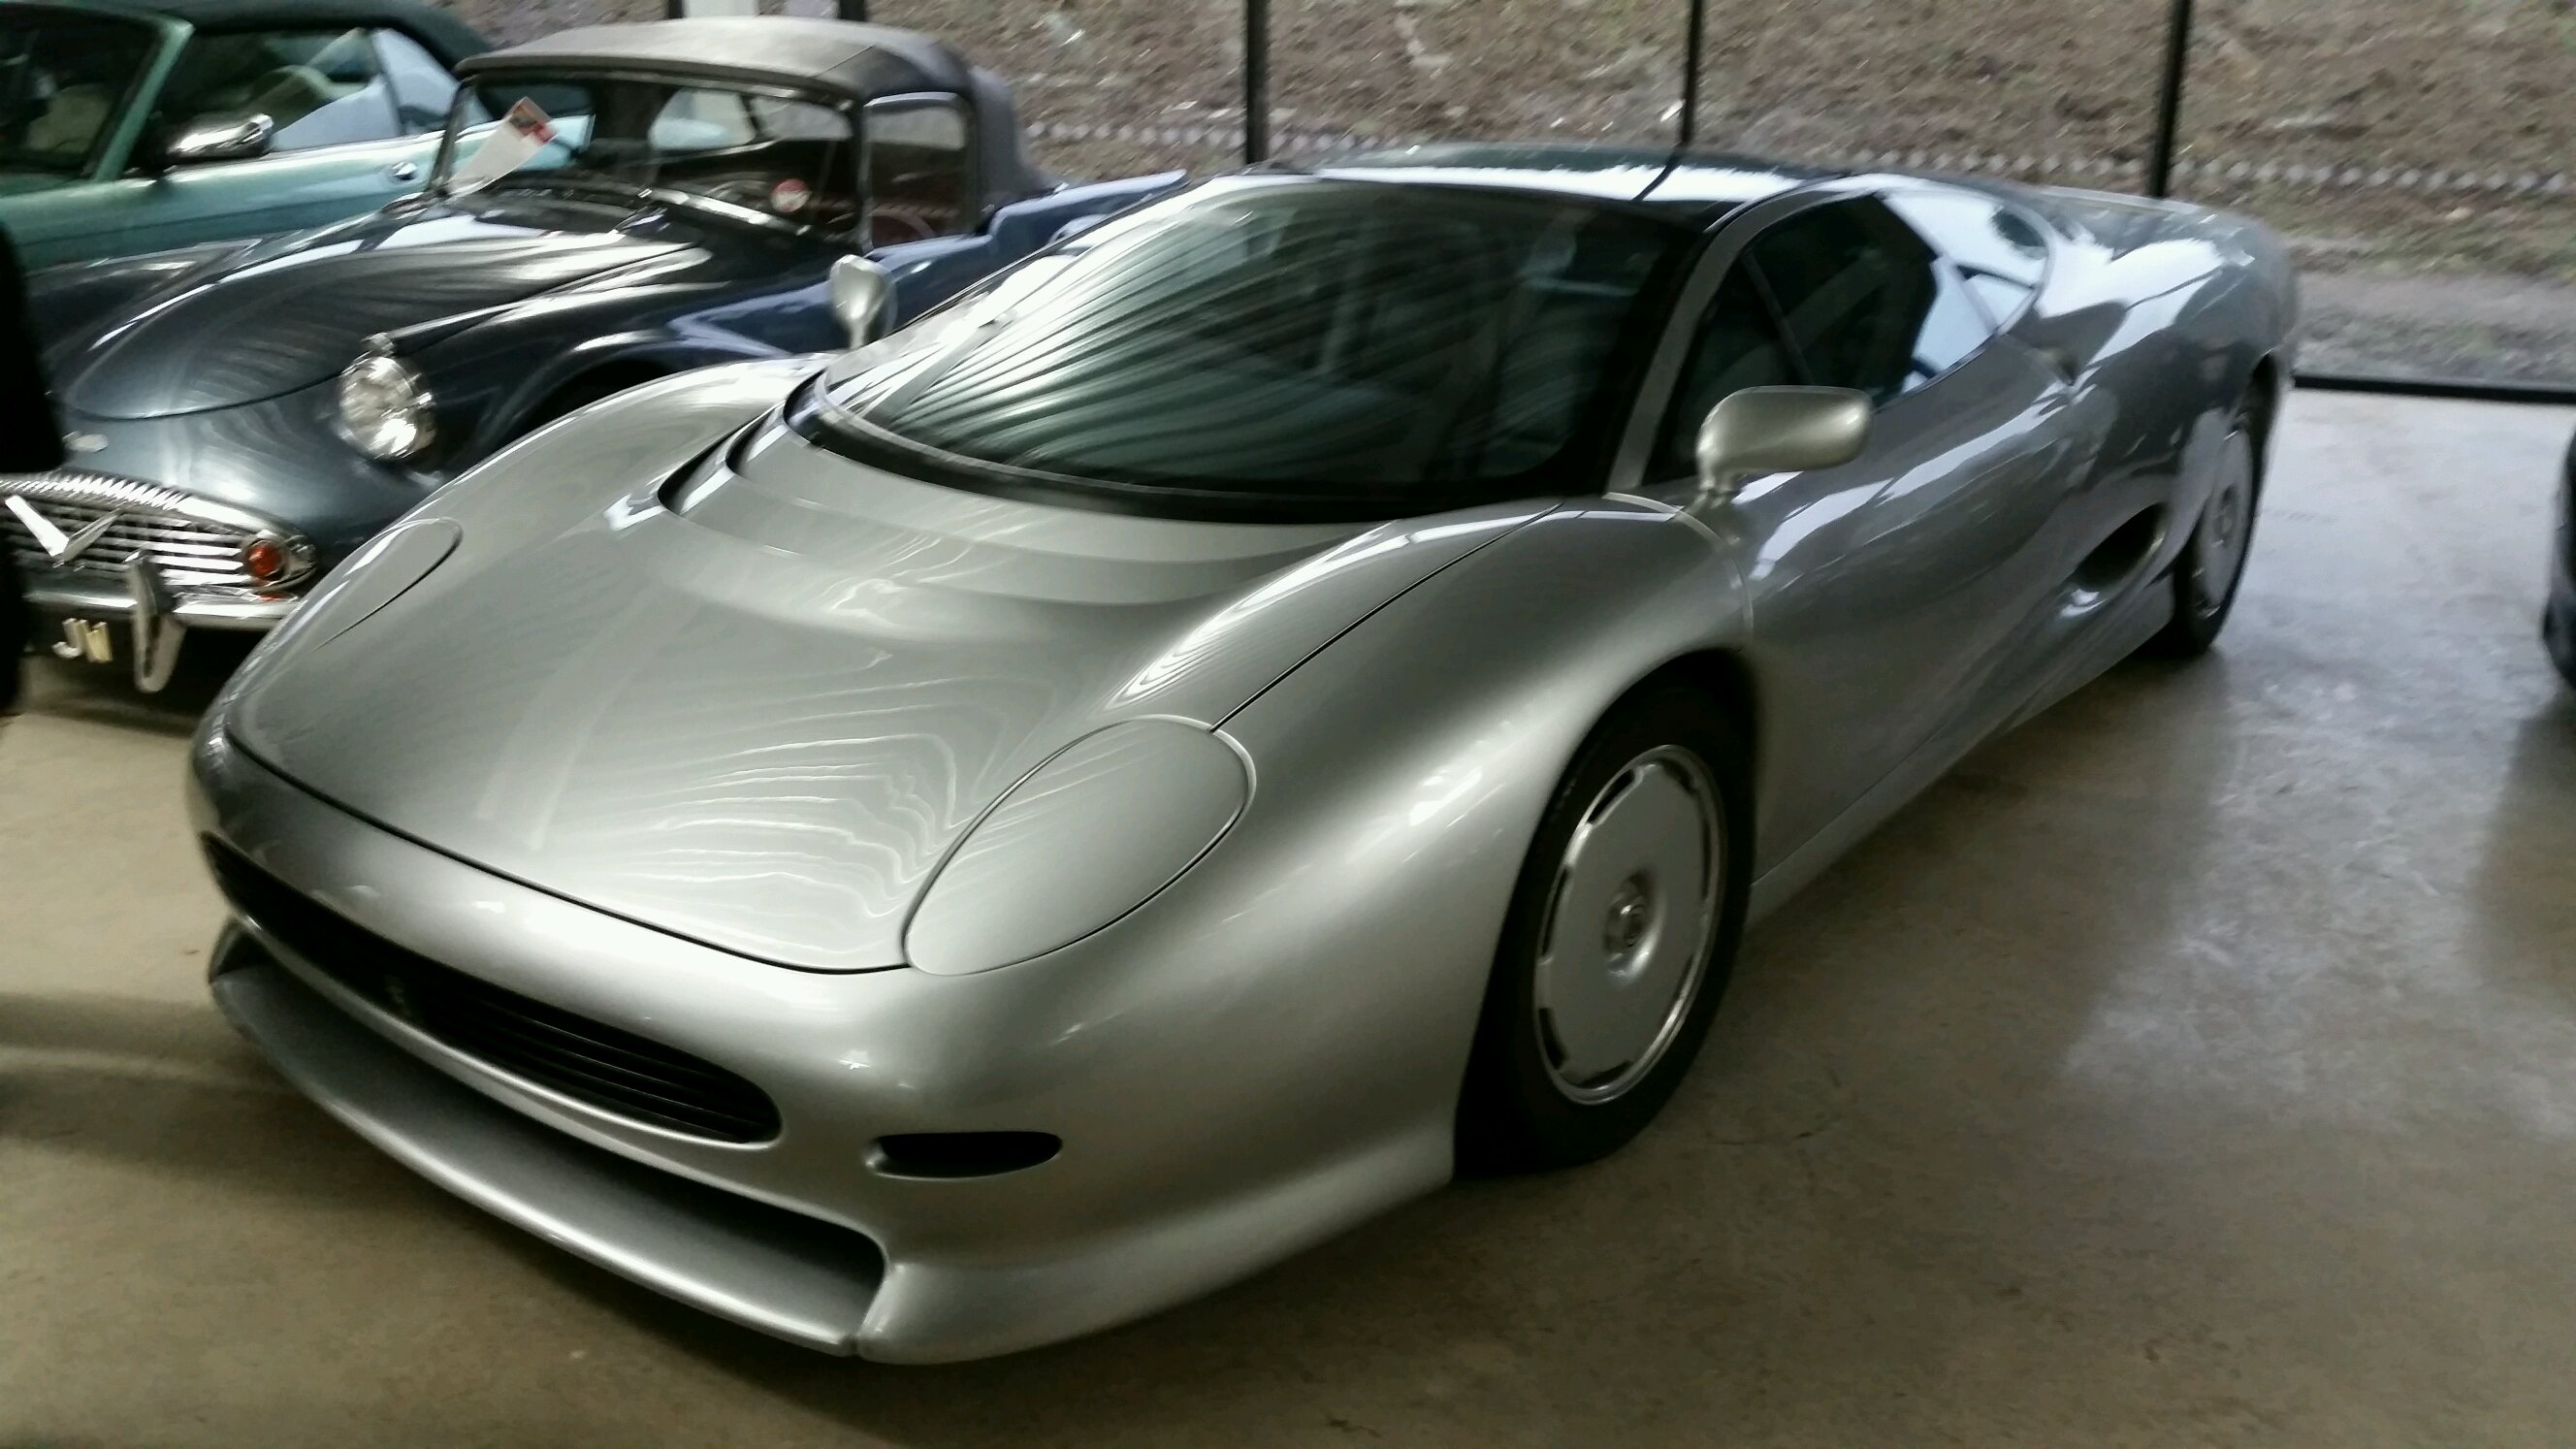 Jaguar   Jaguar Xj220 V12 Prototype   British Cars